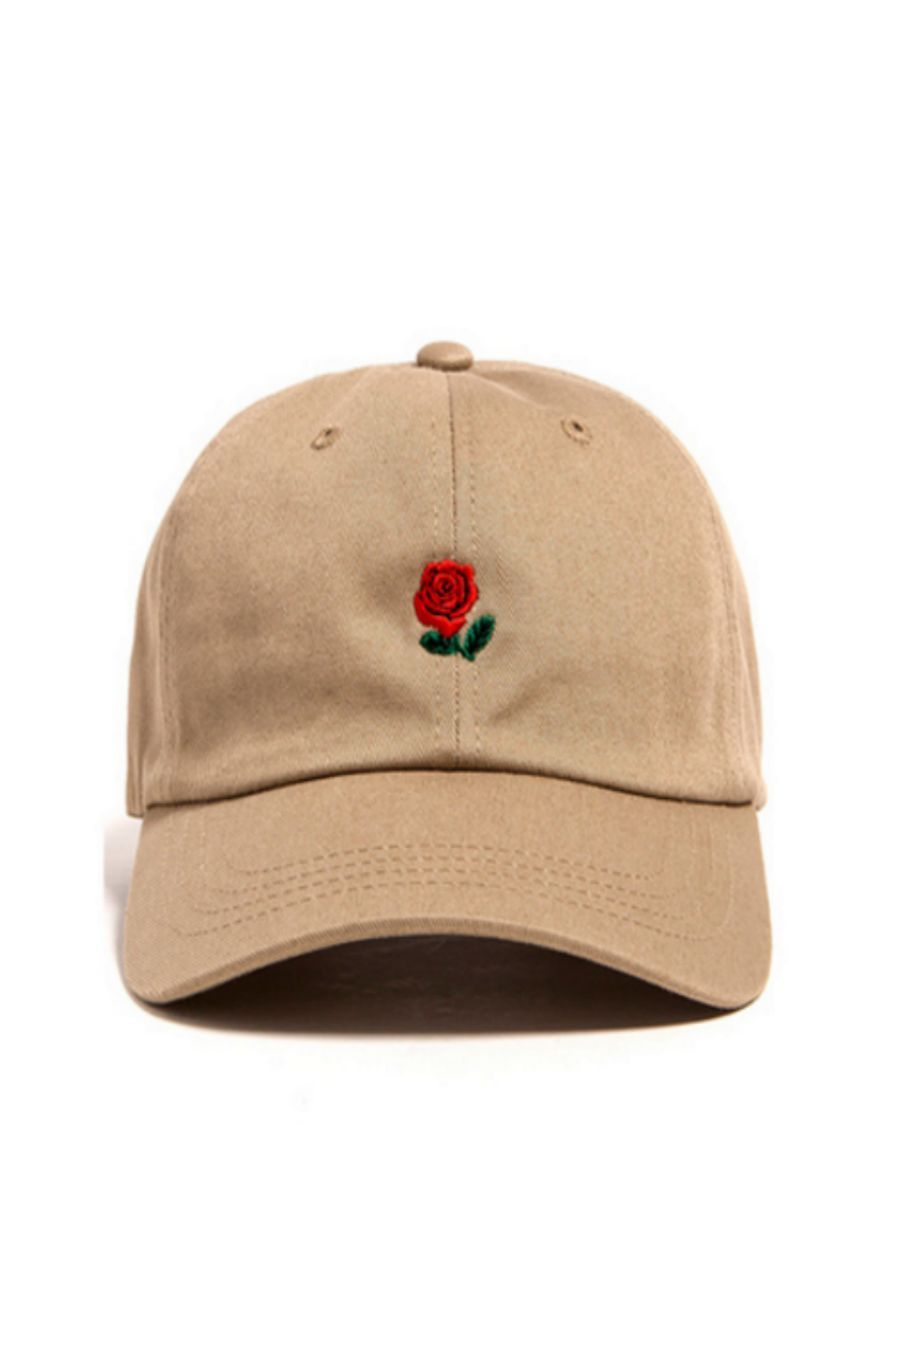 d42b3b80e78 Rose Embroidered Hat In Tan in 2019